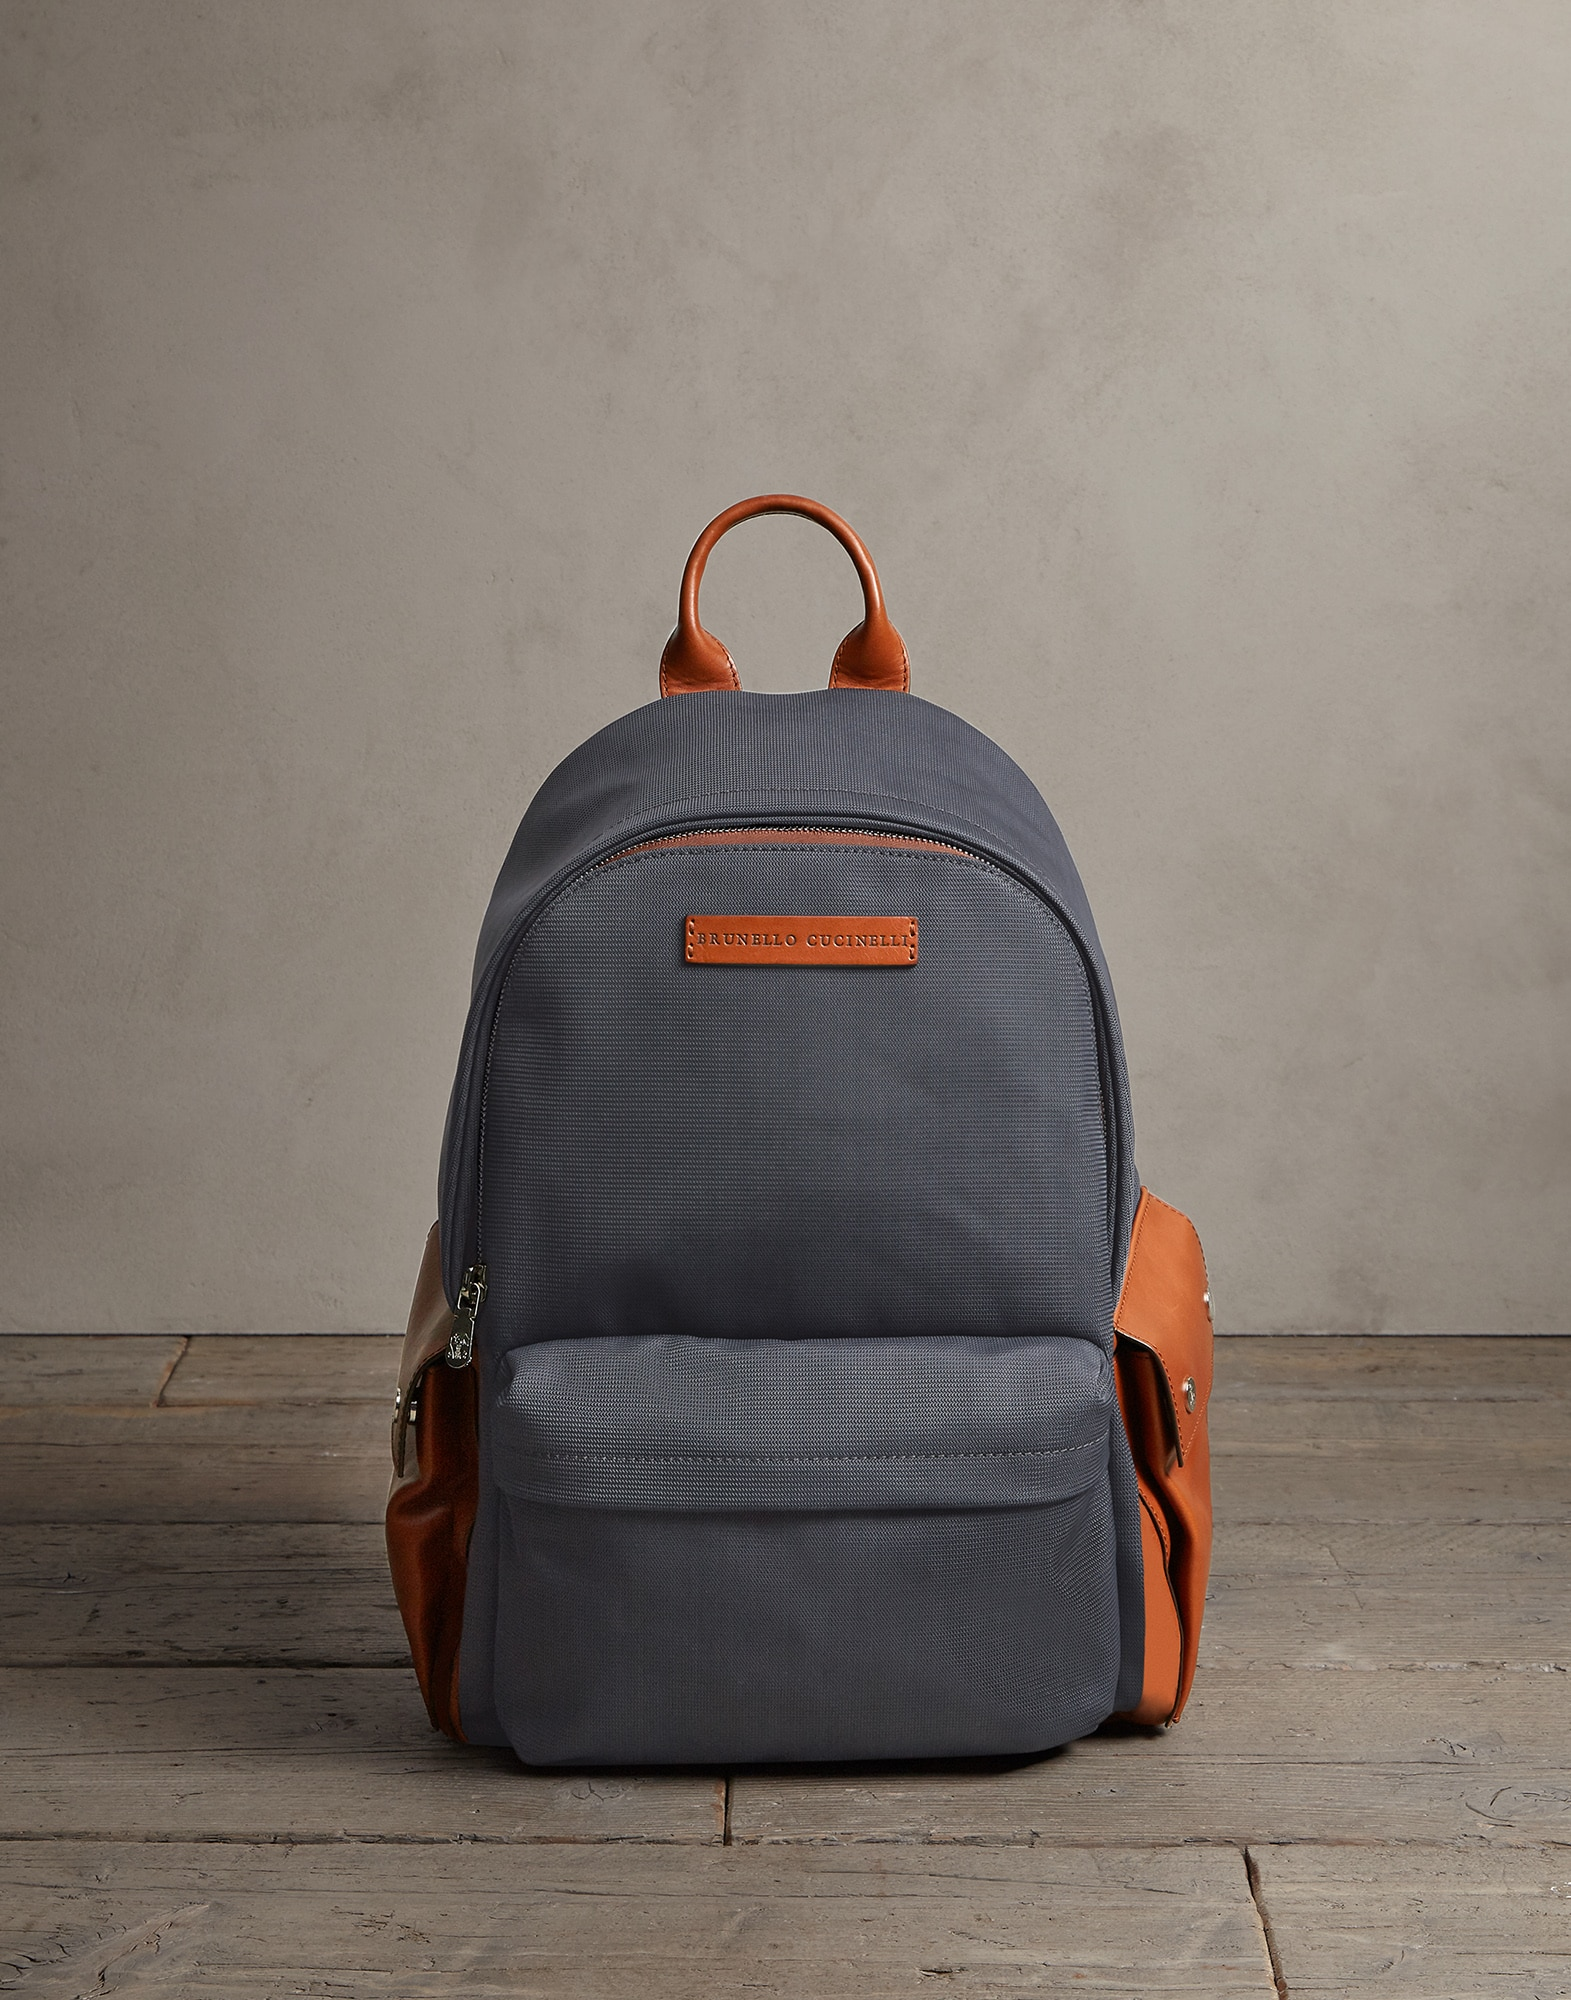 Backpack Lead Man 1 - Brunello Cucinelli